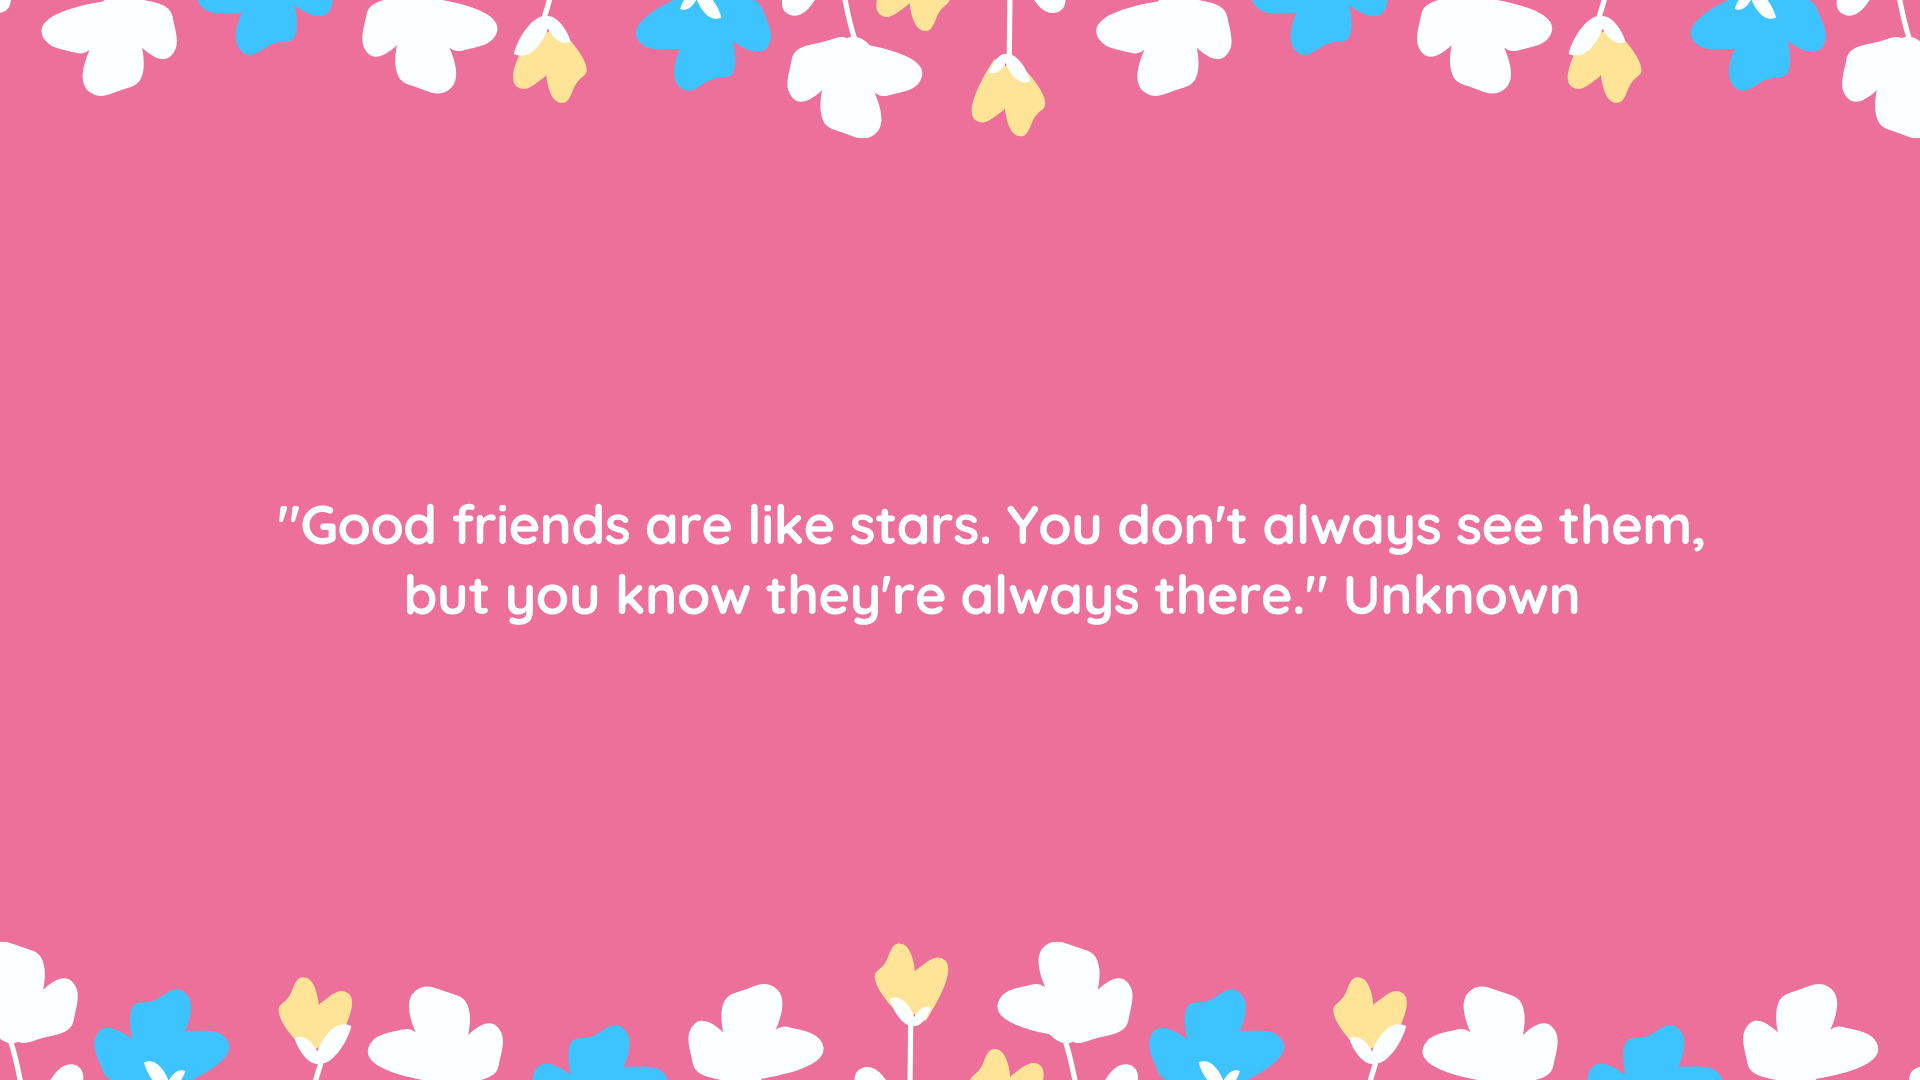 """Good friends are like stars. You don't always see them, but you know they're always there."" Unknown"